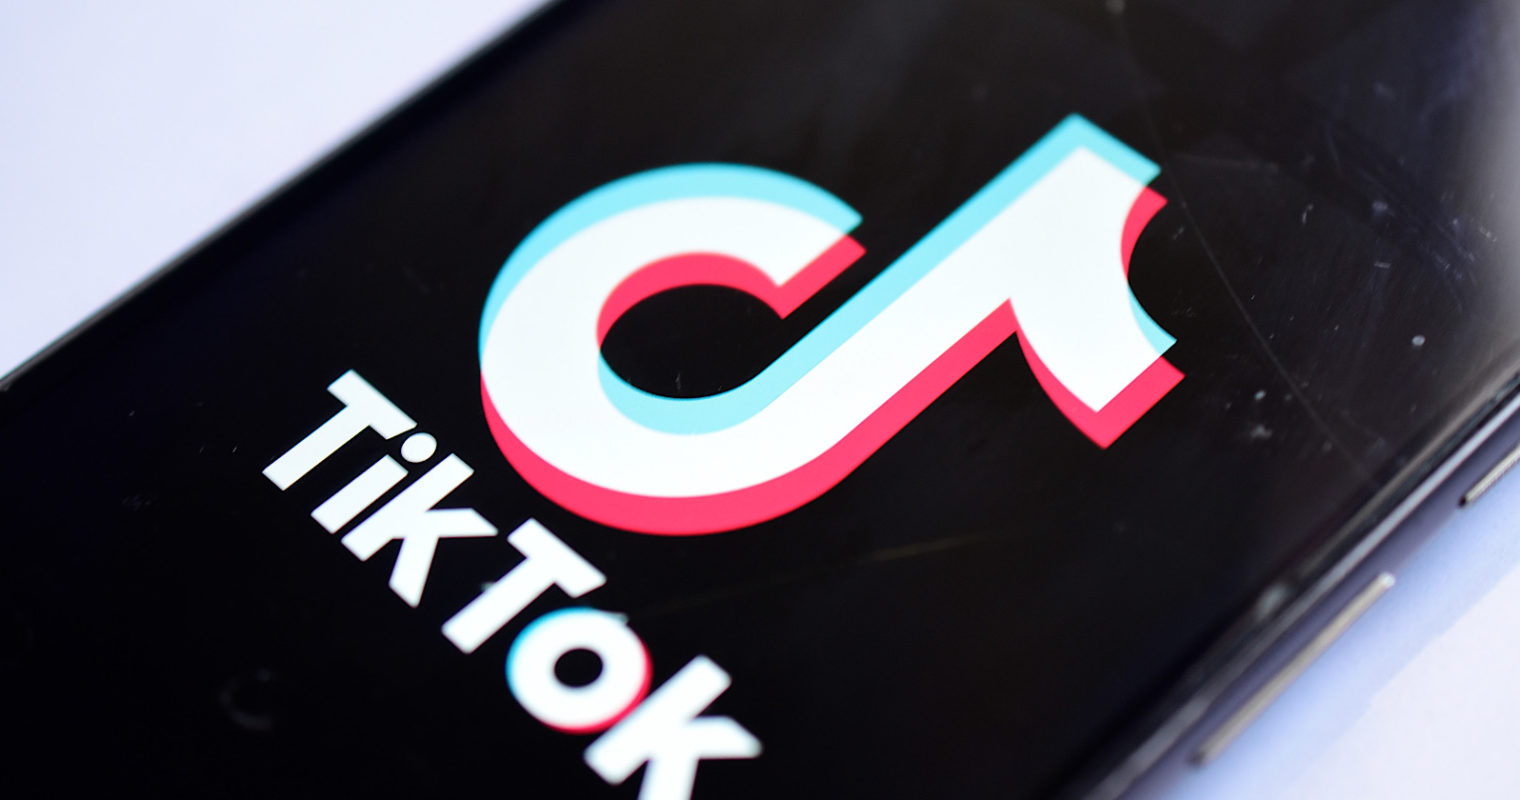 TikTok is Projected to Surpass 50 Million US Users by 2021